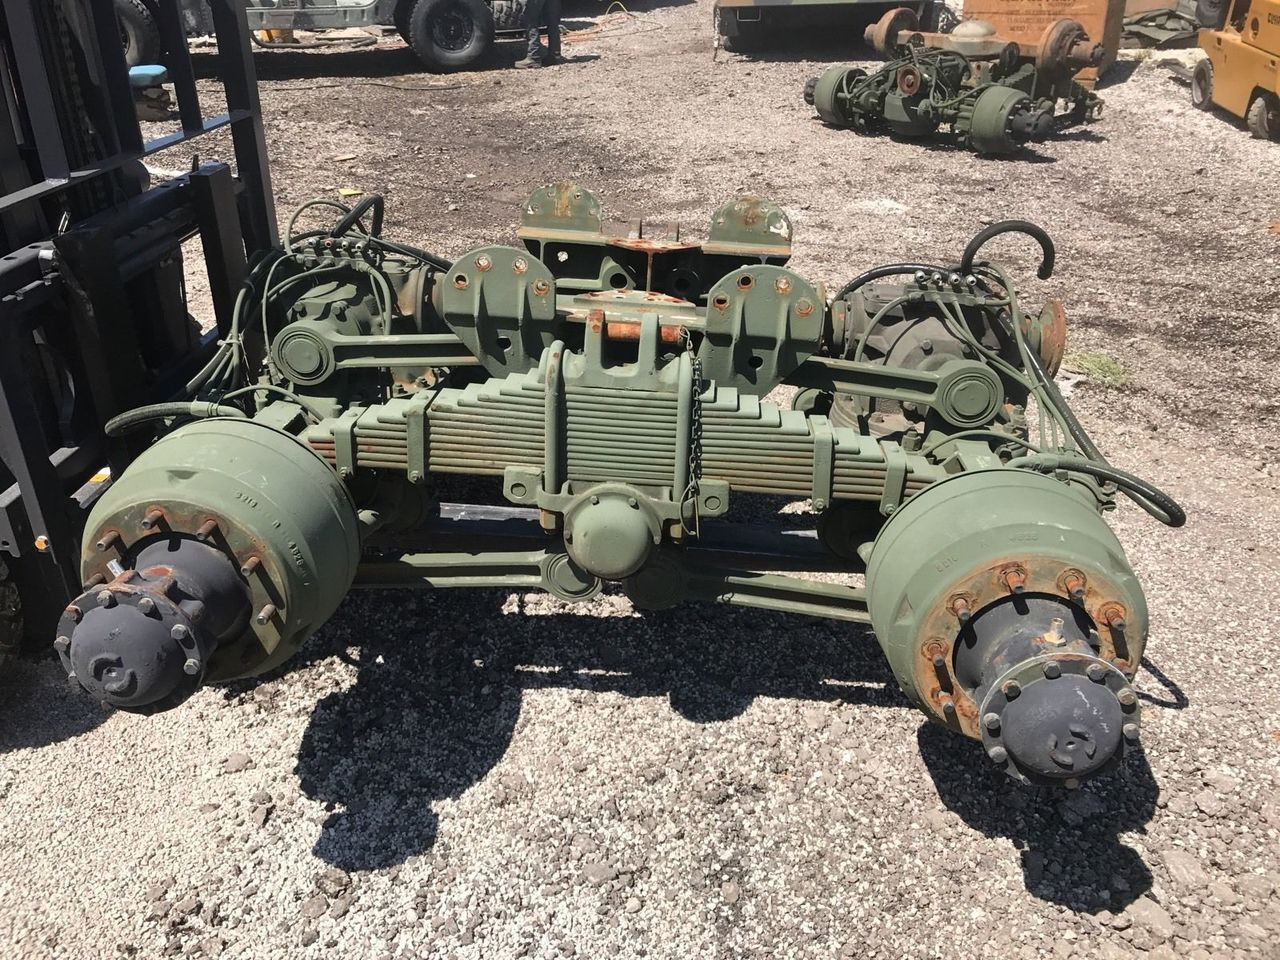 Rear Rockwell 5 Ton Axle M900 Series M923 M934 M931 Bmy Tandem Midwest Military Equipment